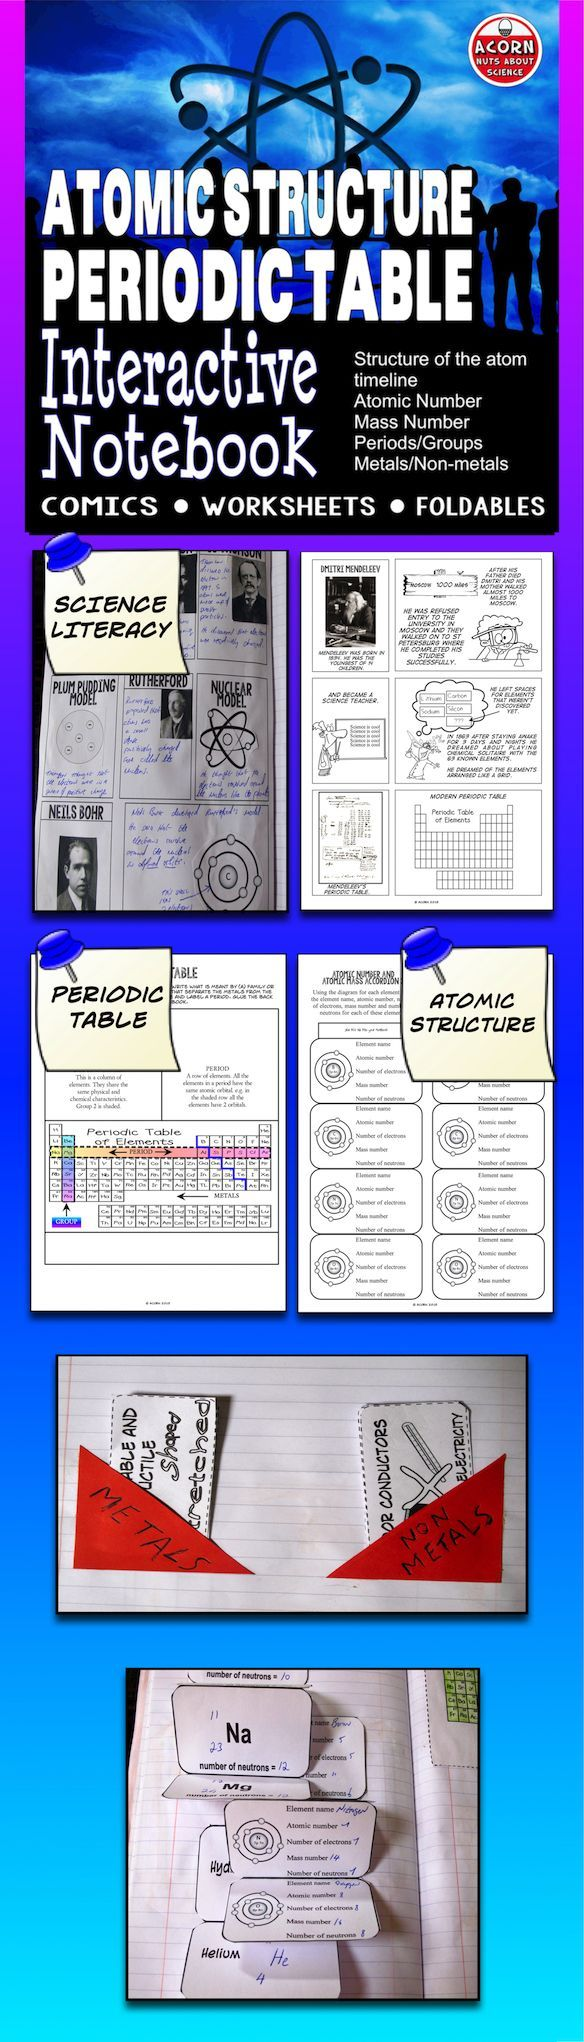 Best 25 atomic number ideas on pinterest atomic units best 25 atomic number ideas on pinterest atomic units chemistry table and atoms gamestrikefo Choice Image